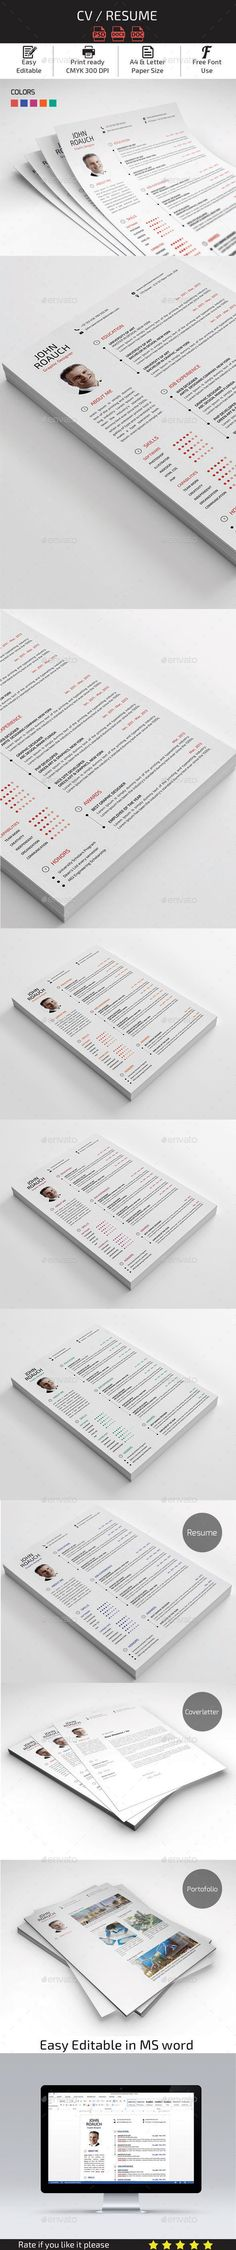 Simple Resume\/Cv Volume 4 Business resume, Simple resume and - resume in indesign